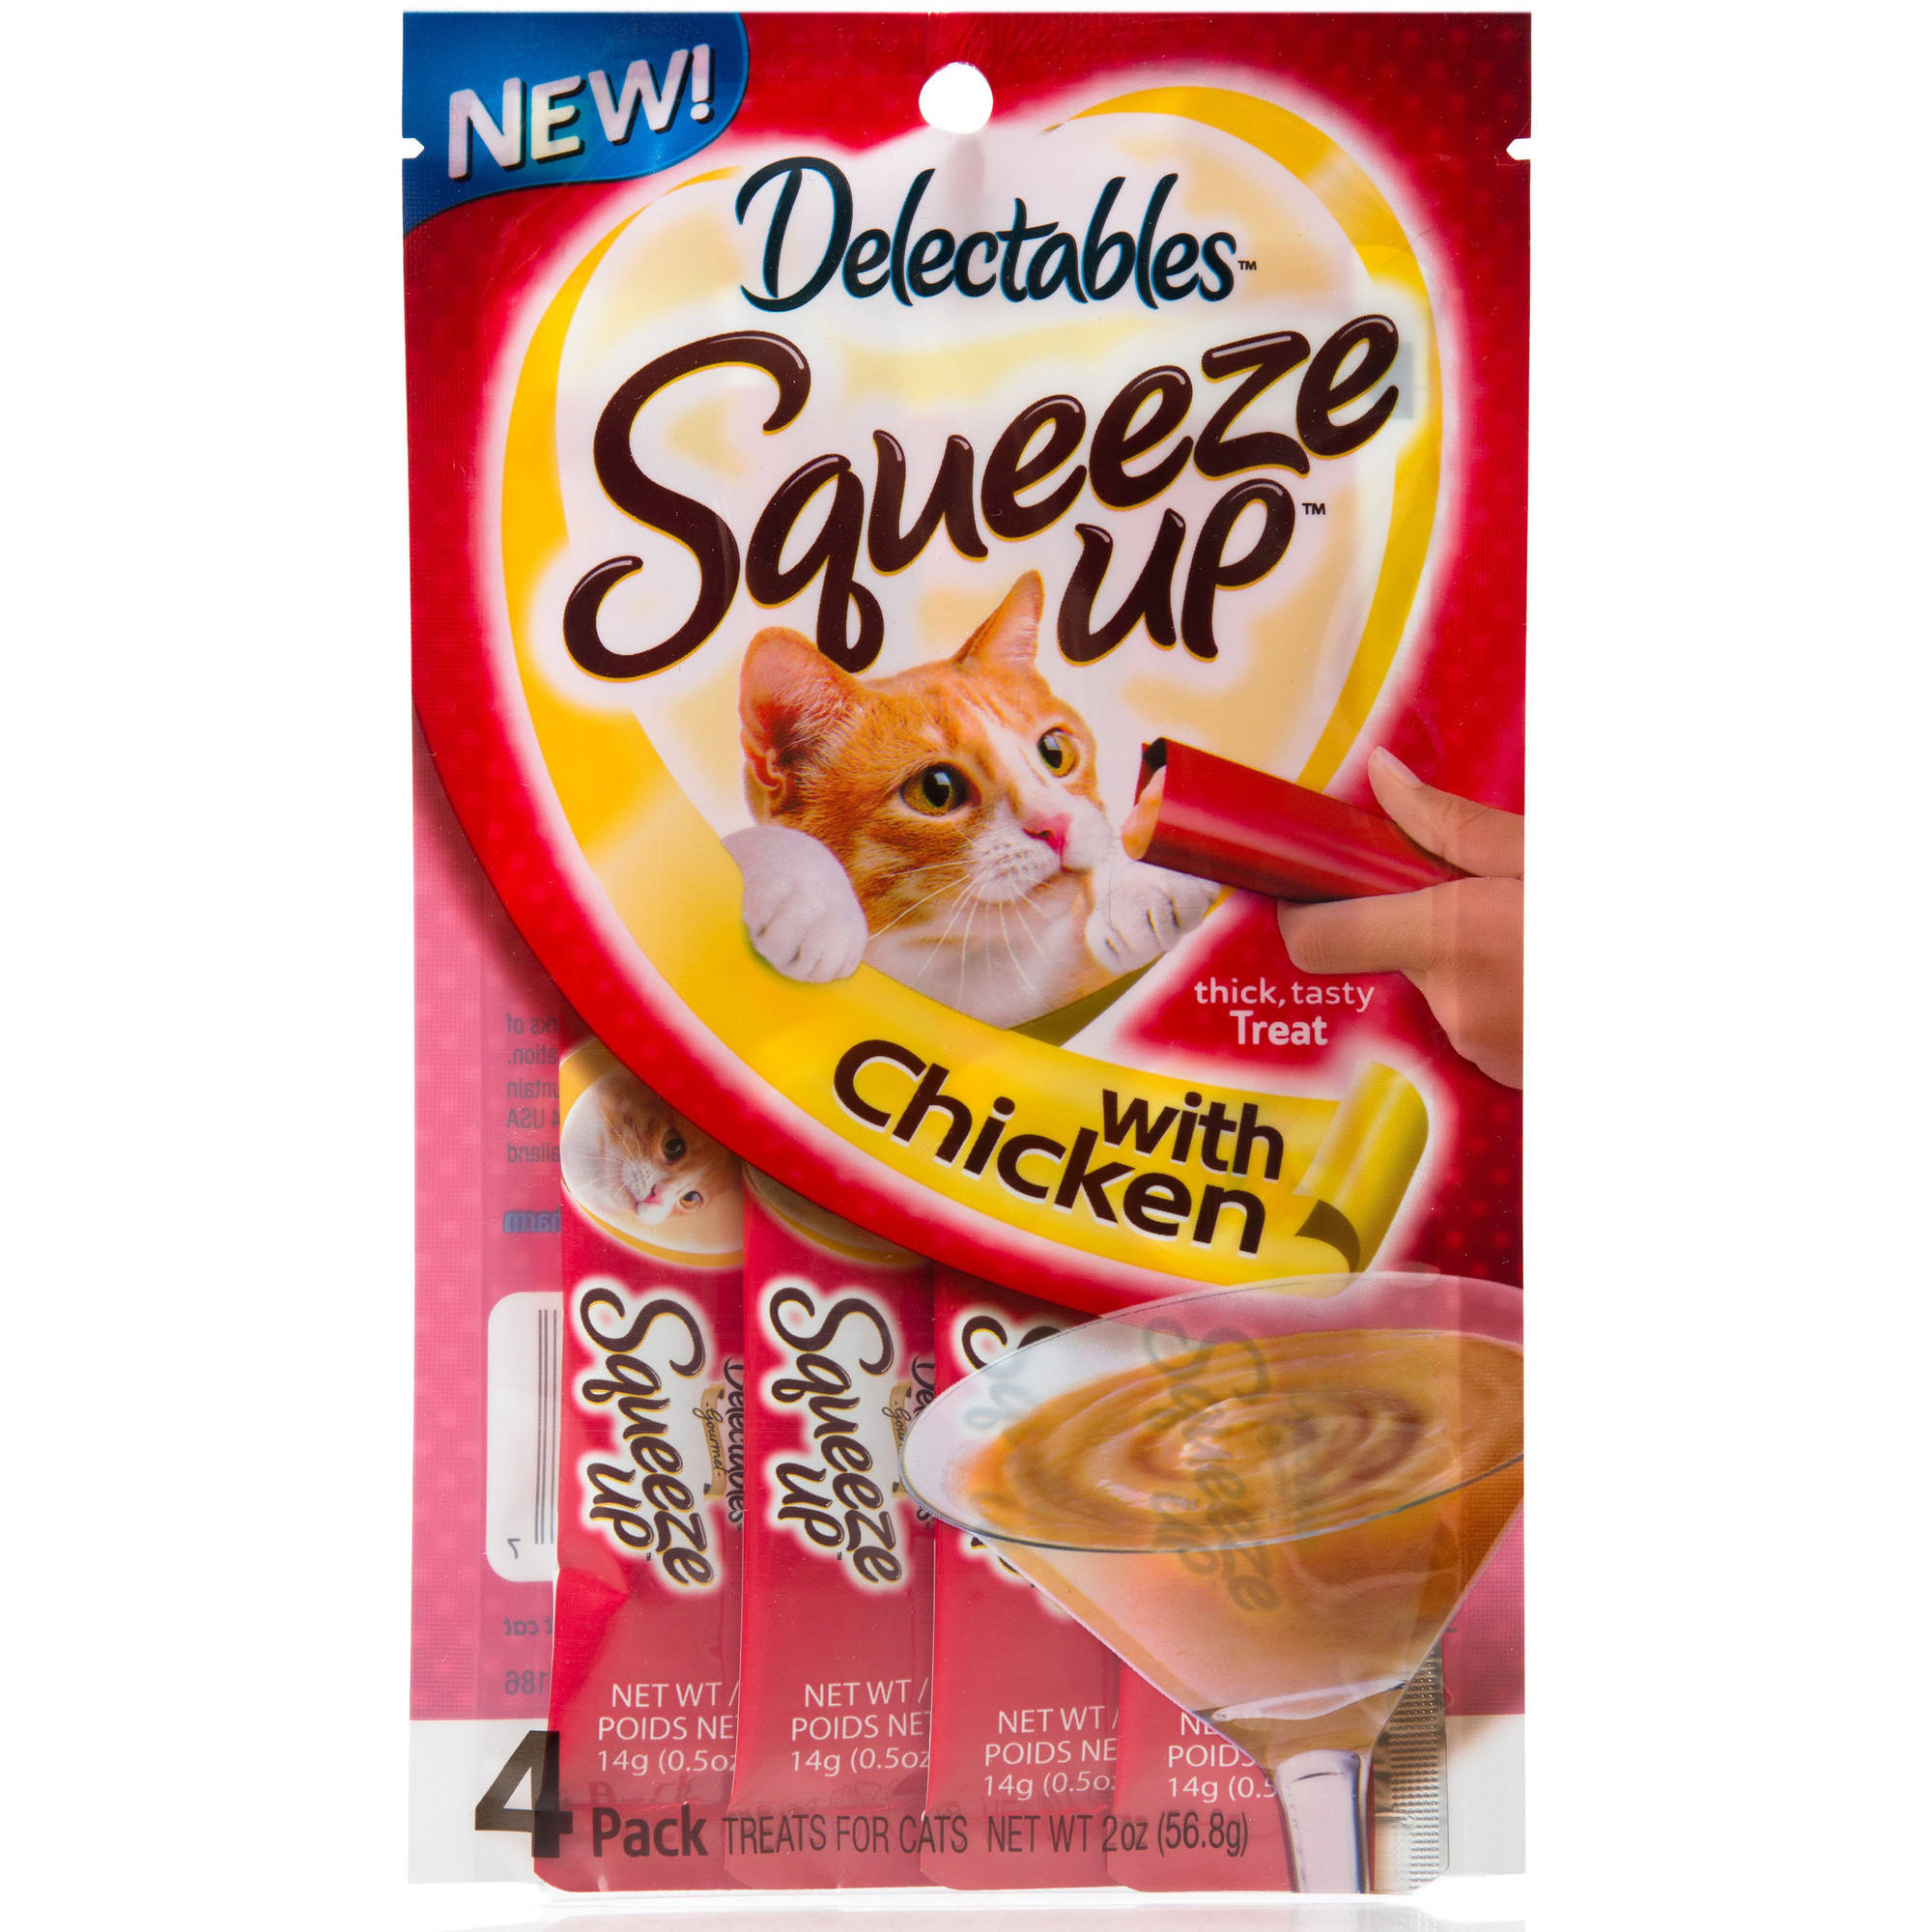 Delectables Squeeze Up Cat Treats Chicken Flavor, 4 Count